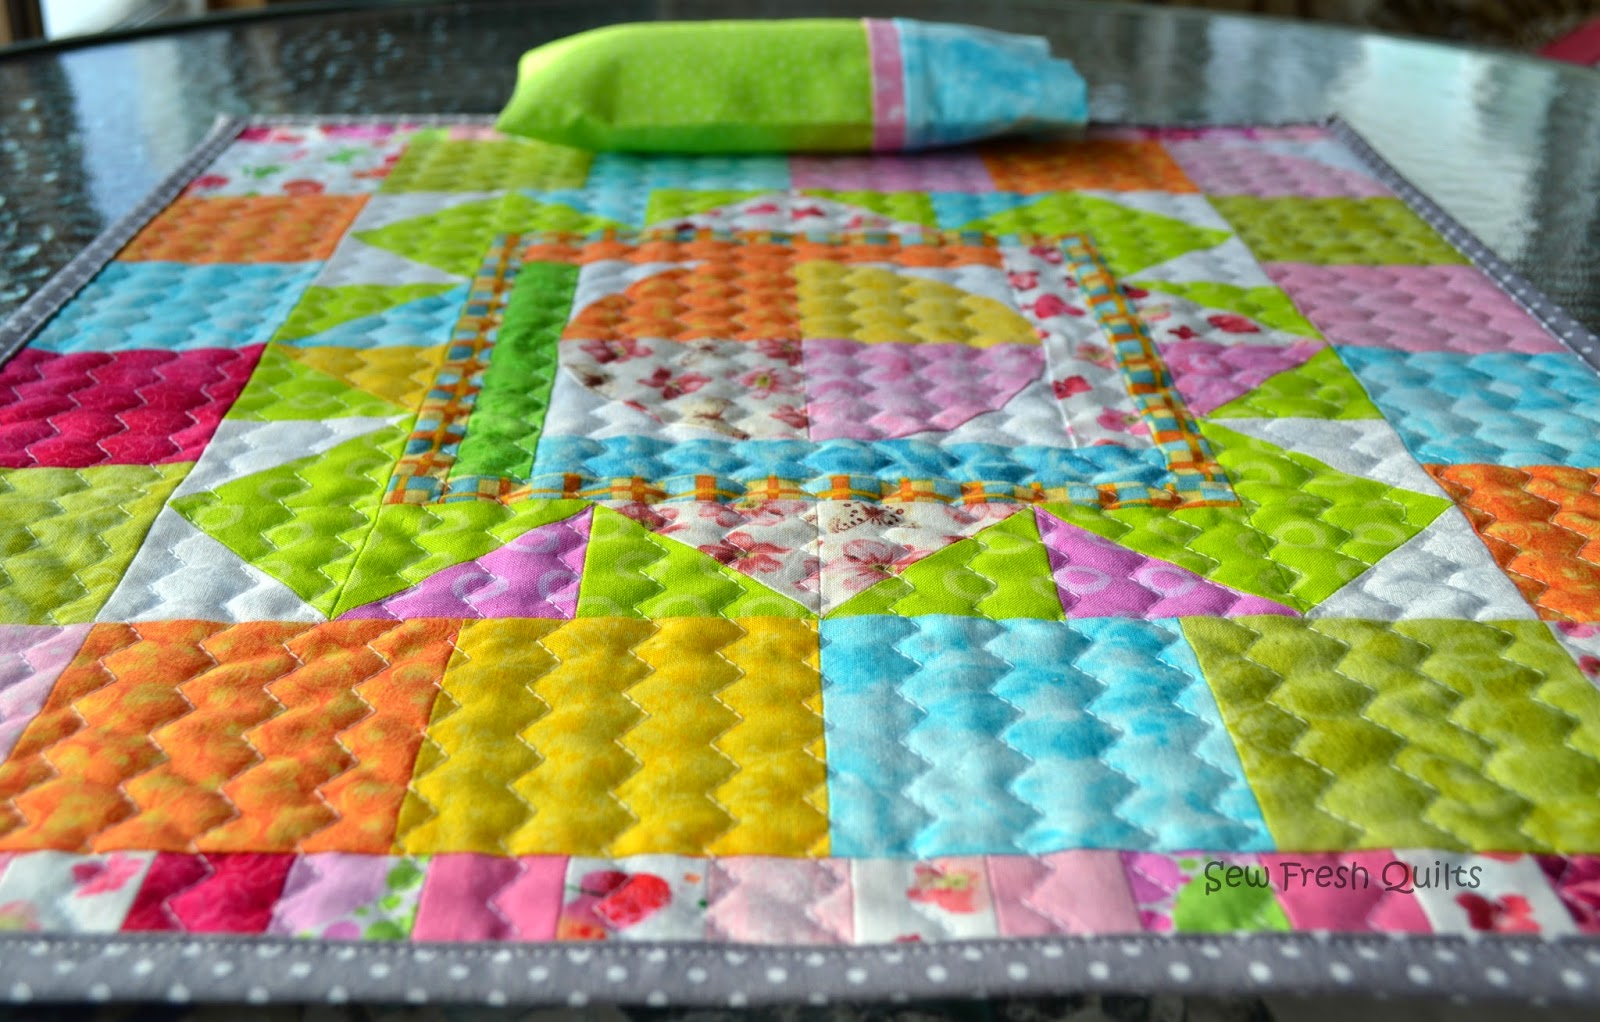 Sew fresh quilts top 10 tips for new quilters quilting with zig zag on medallion doll quilt jeuxipadfo Gallery